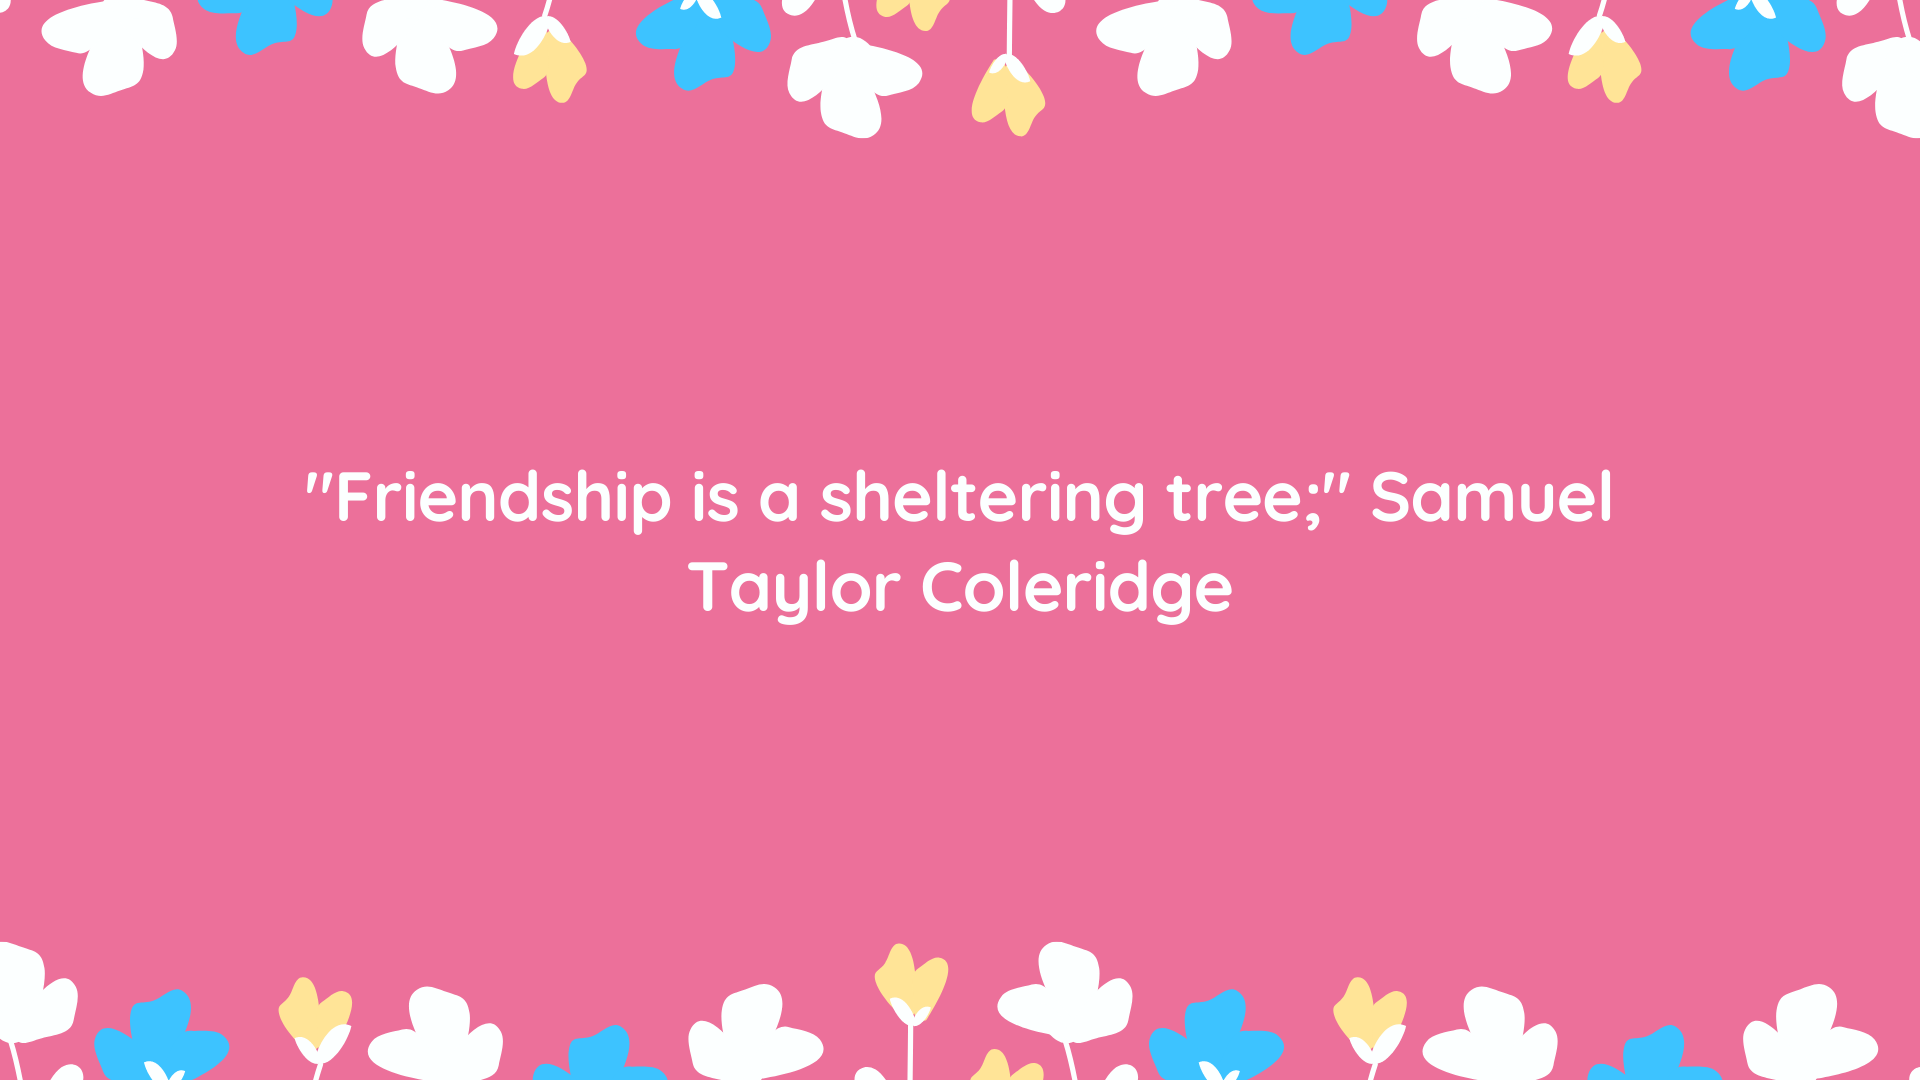 """Friendship is a sheltering tree;"" Samuel Taylor Coleridge"